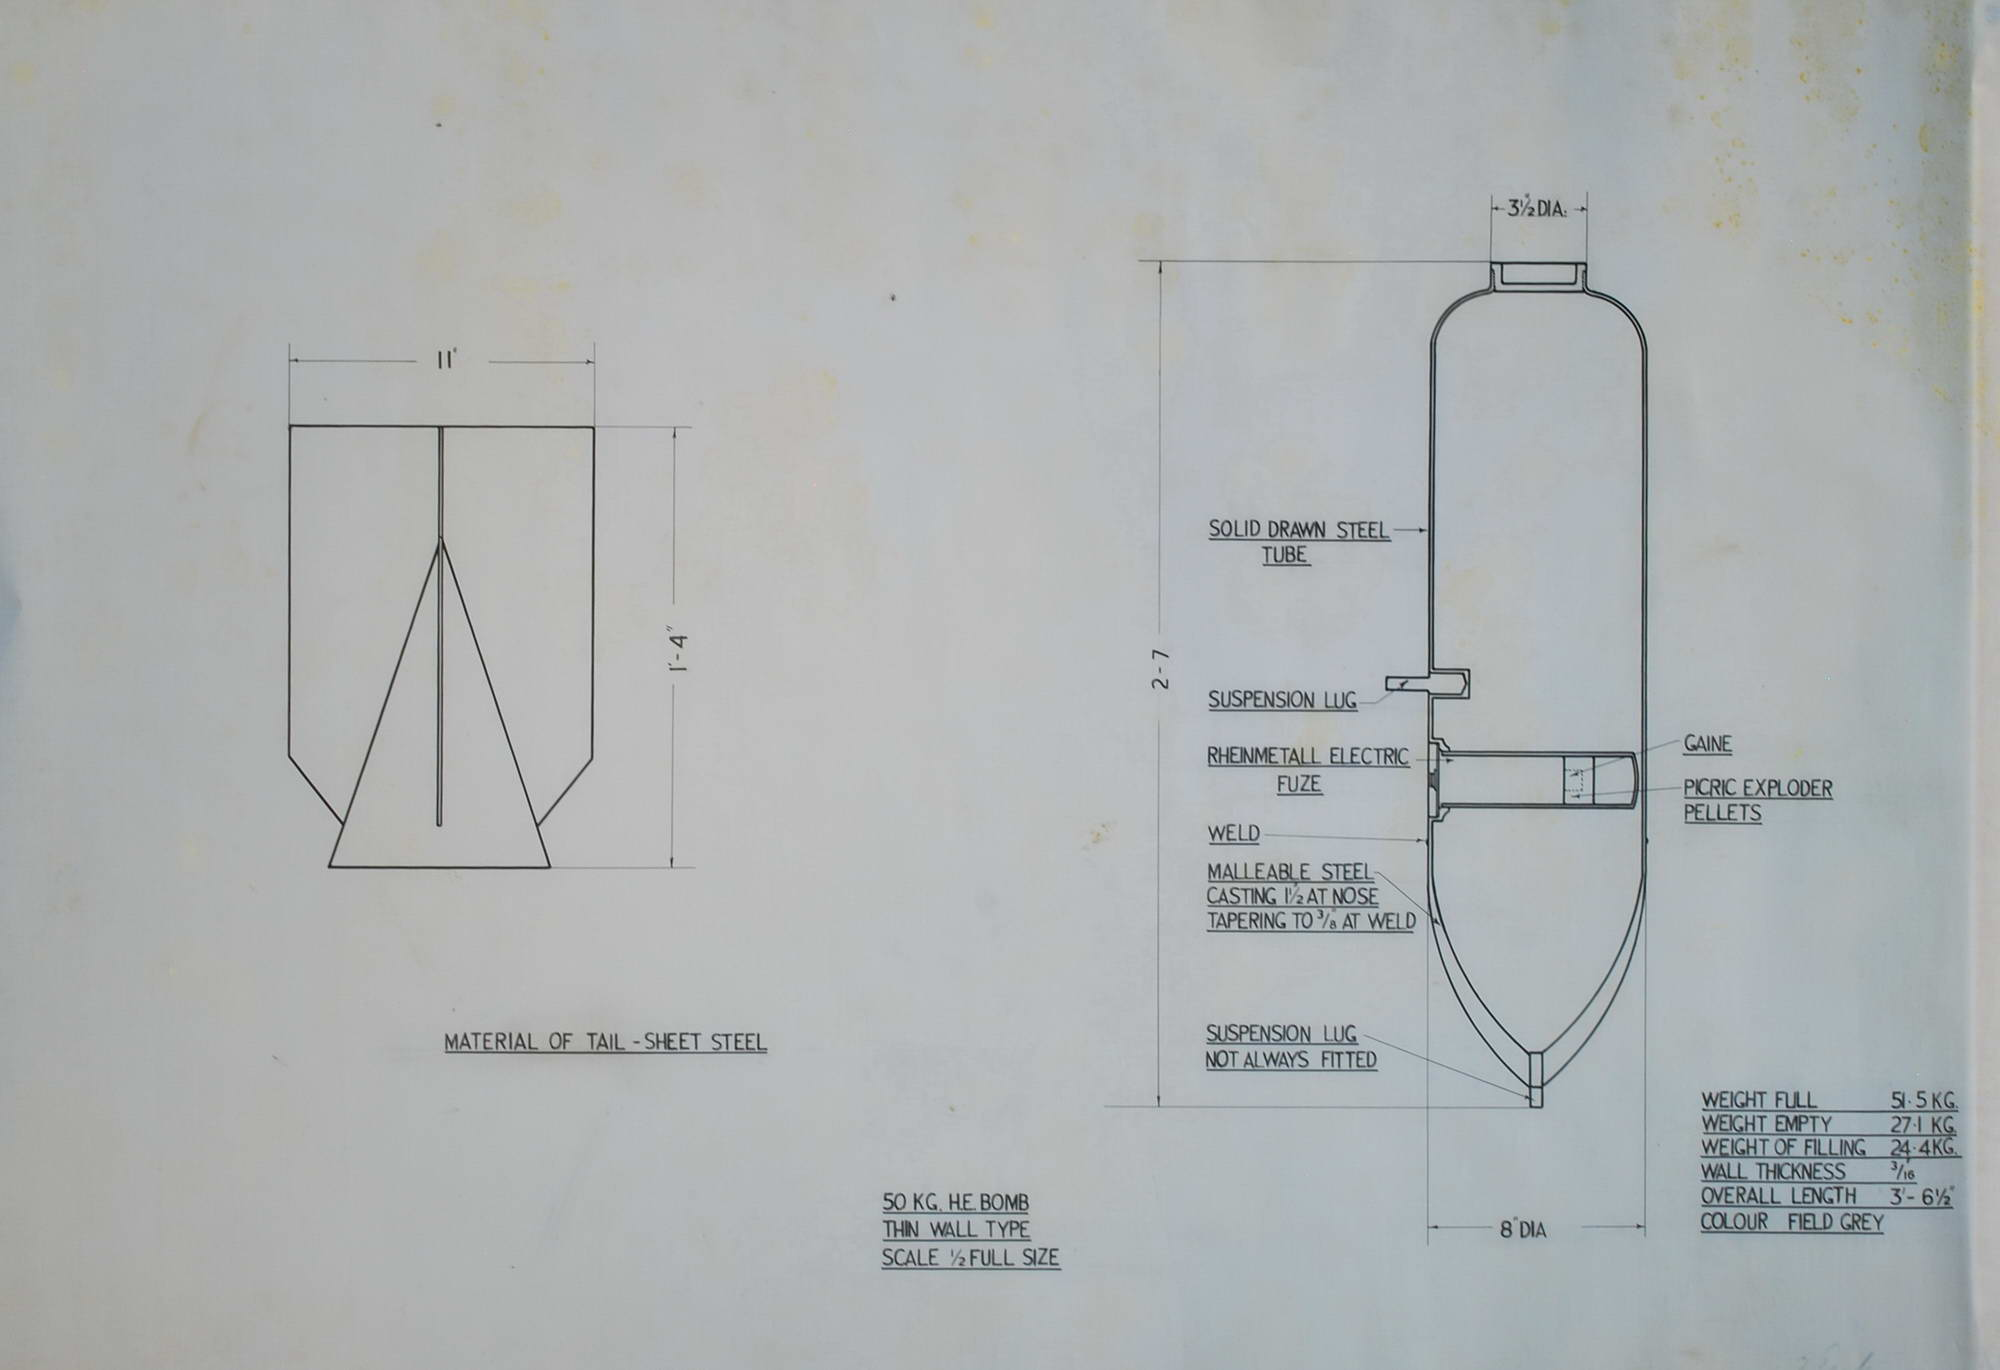 Wwii British Enemy Bomb Disarming Diagrams Collection Wall Schematic Engineering Diagram